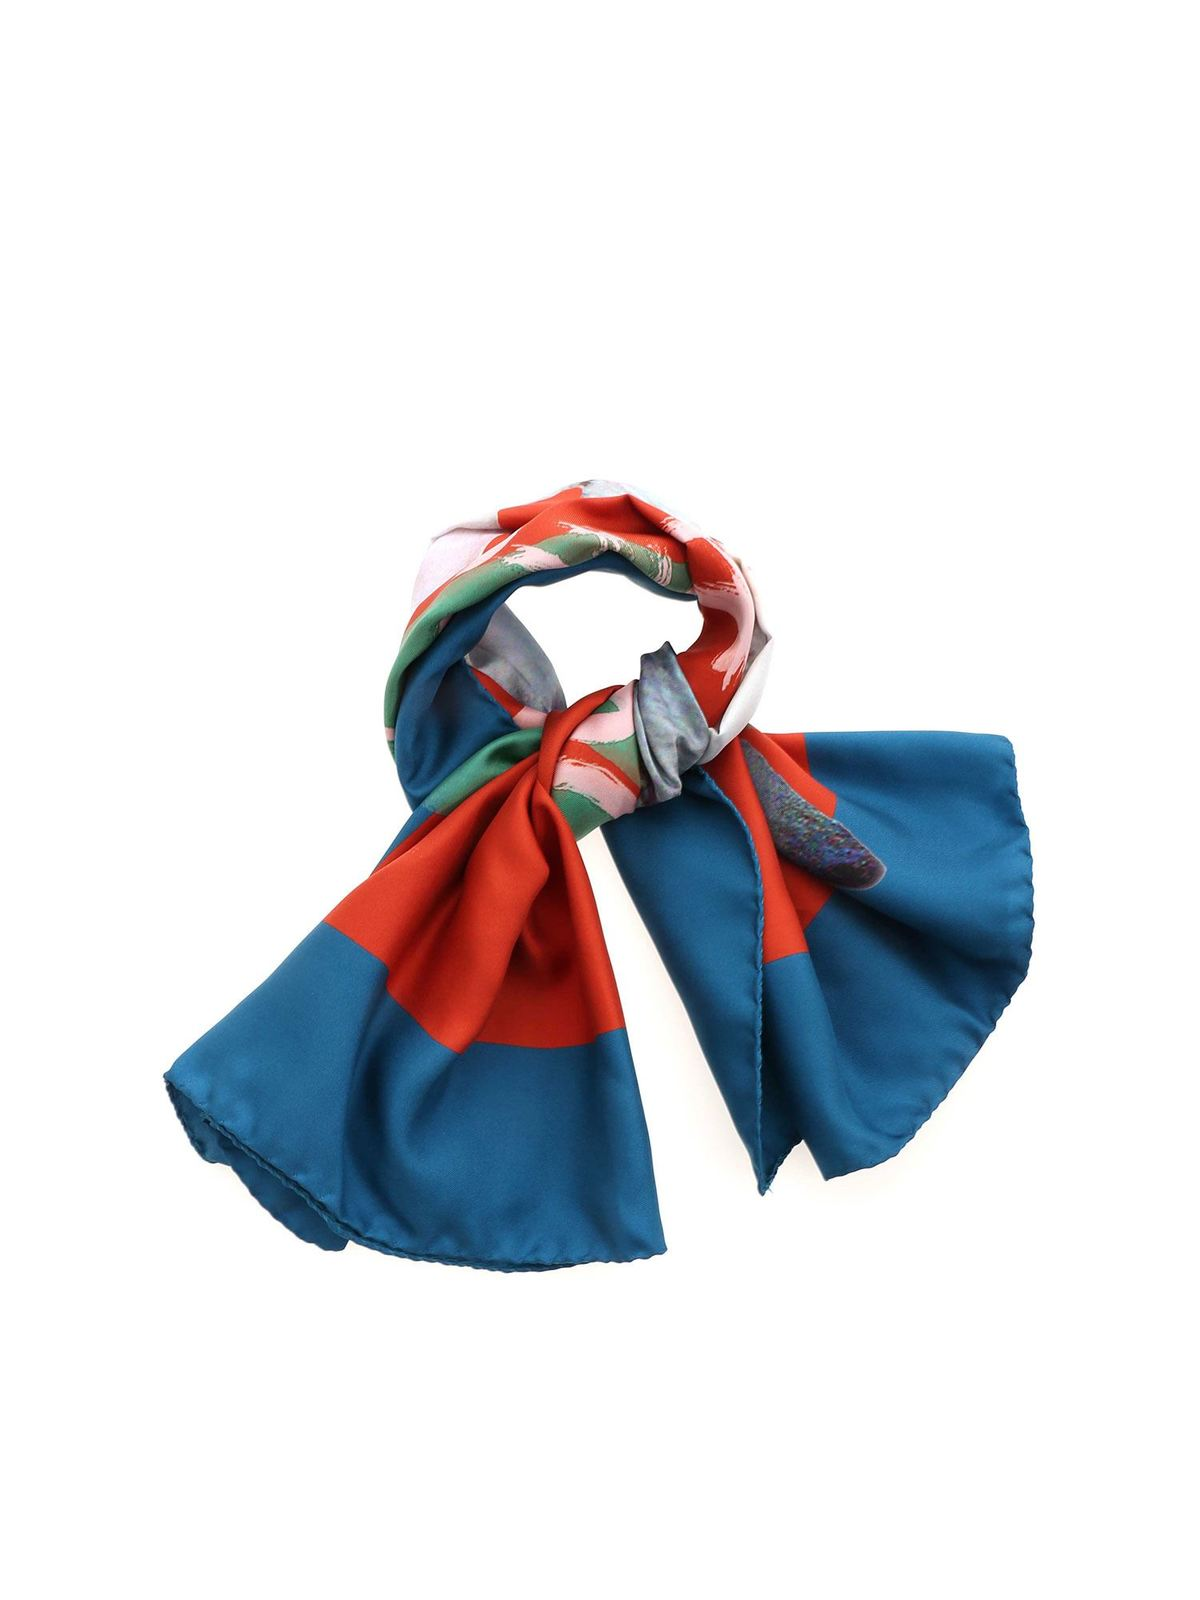 Vivienne Westwood LOGO SCARF IN ORANGE